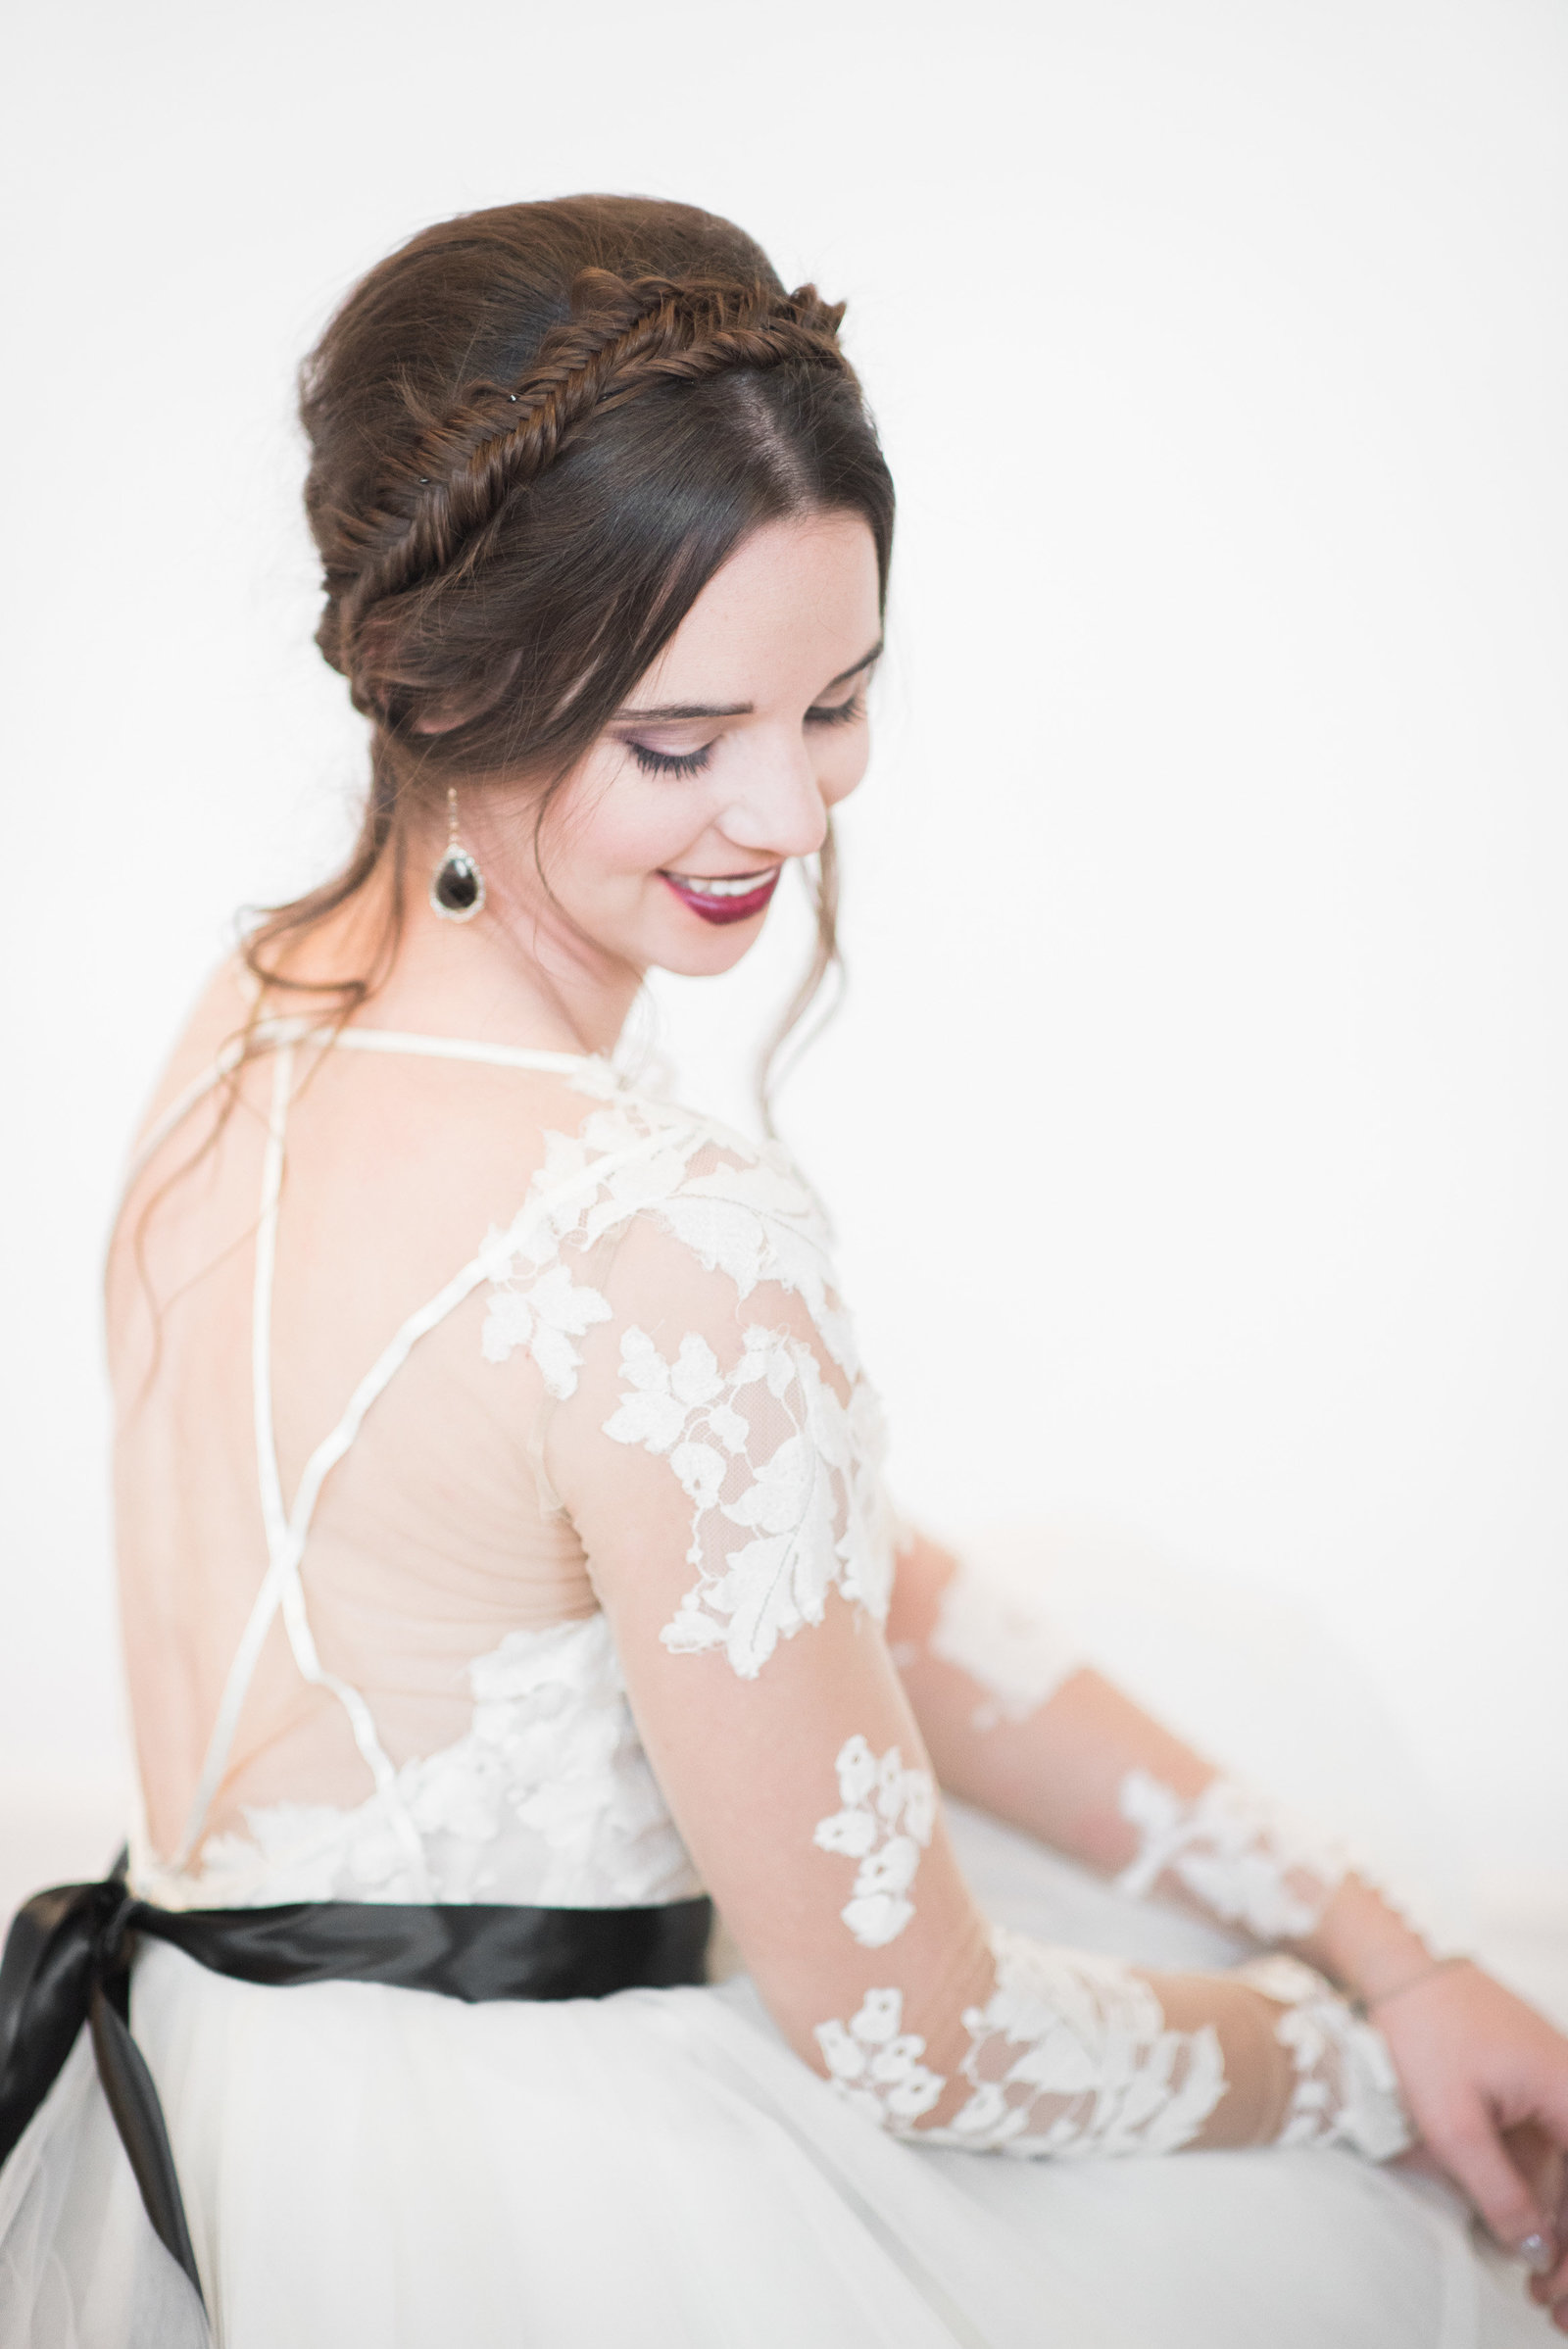 Bridal portrait of bride wearing a white lace wedding dress